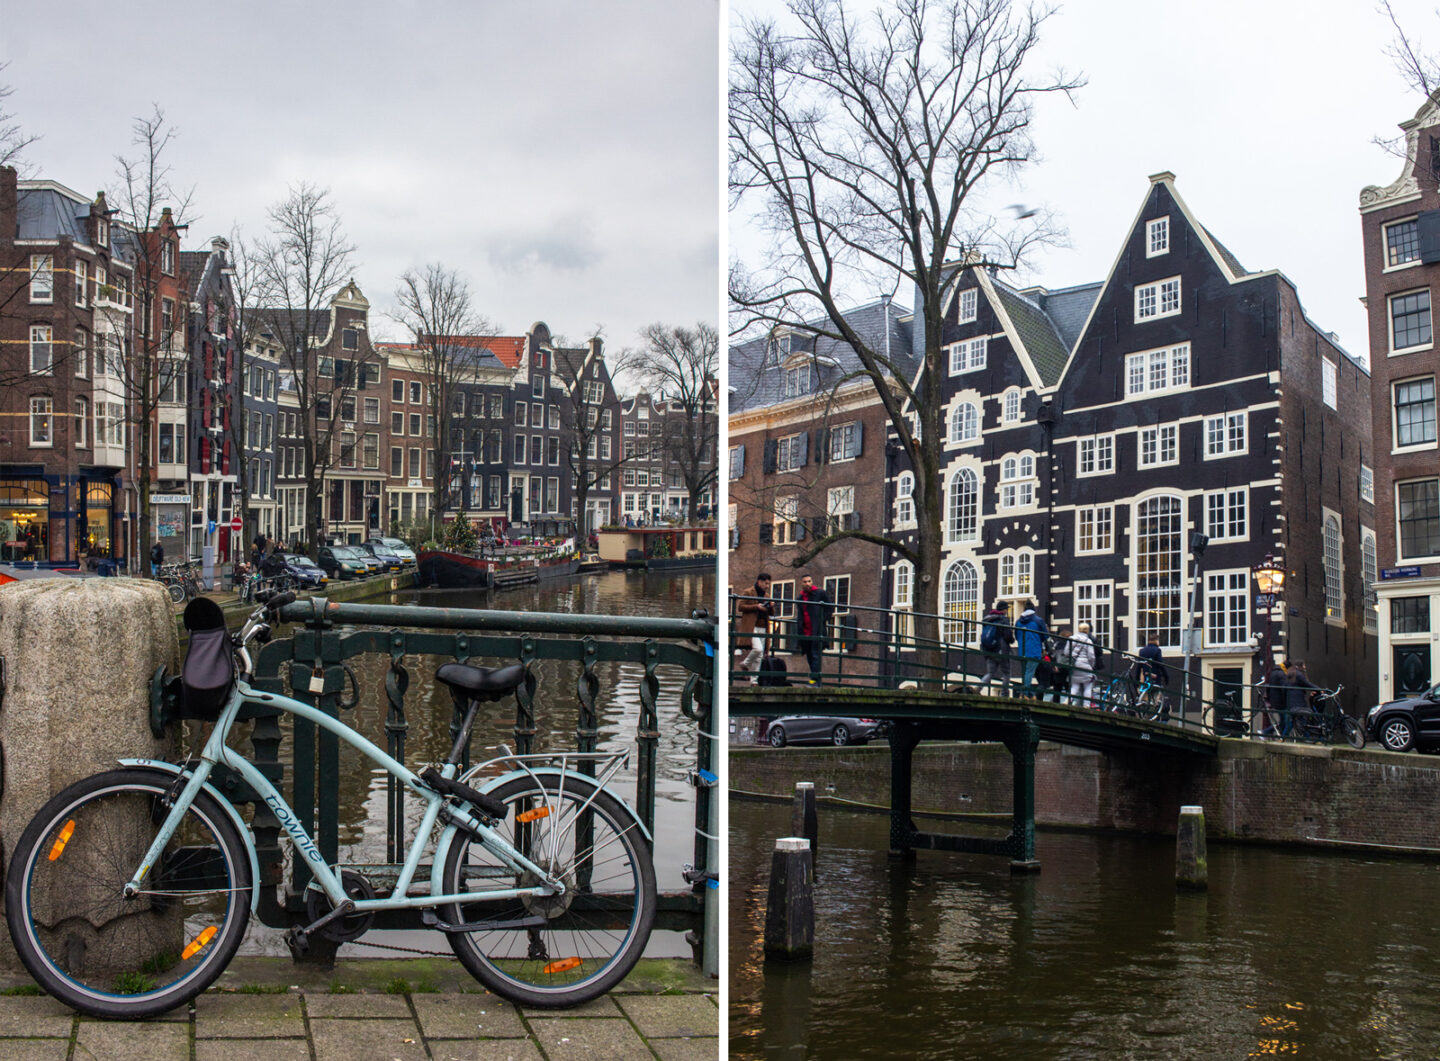 Canal and house views in Amsterdam